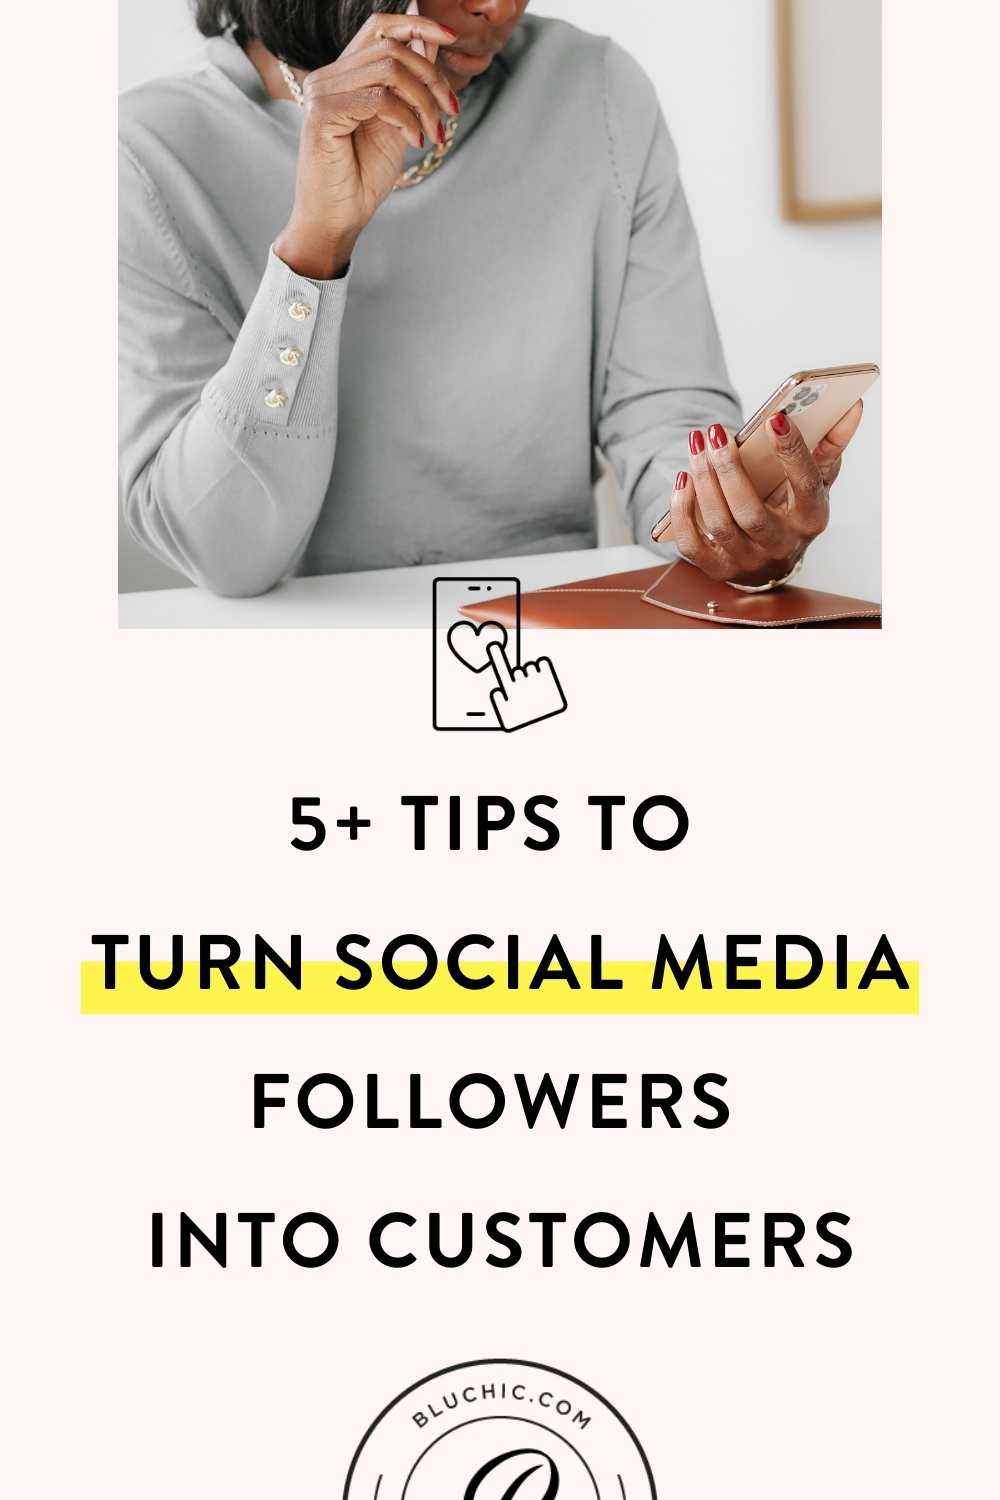 How to Convert Followers to Customers | As a business owner, how do you convert social media followers into customers? Here are 5 ways you can do just that.